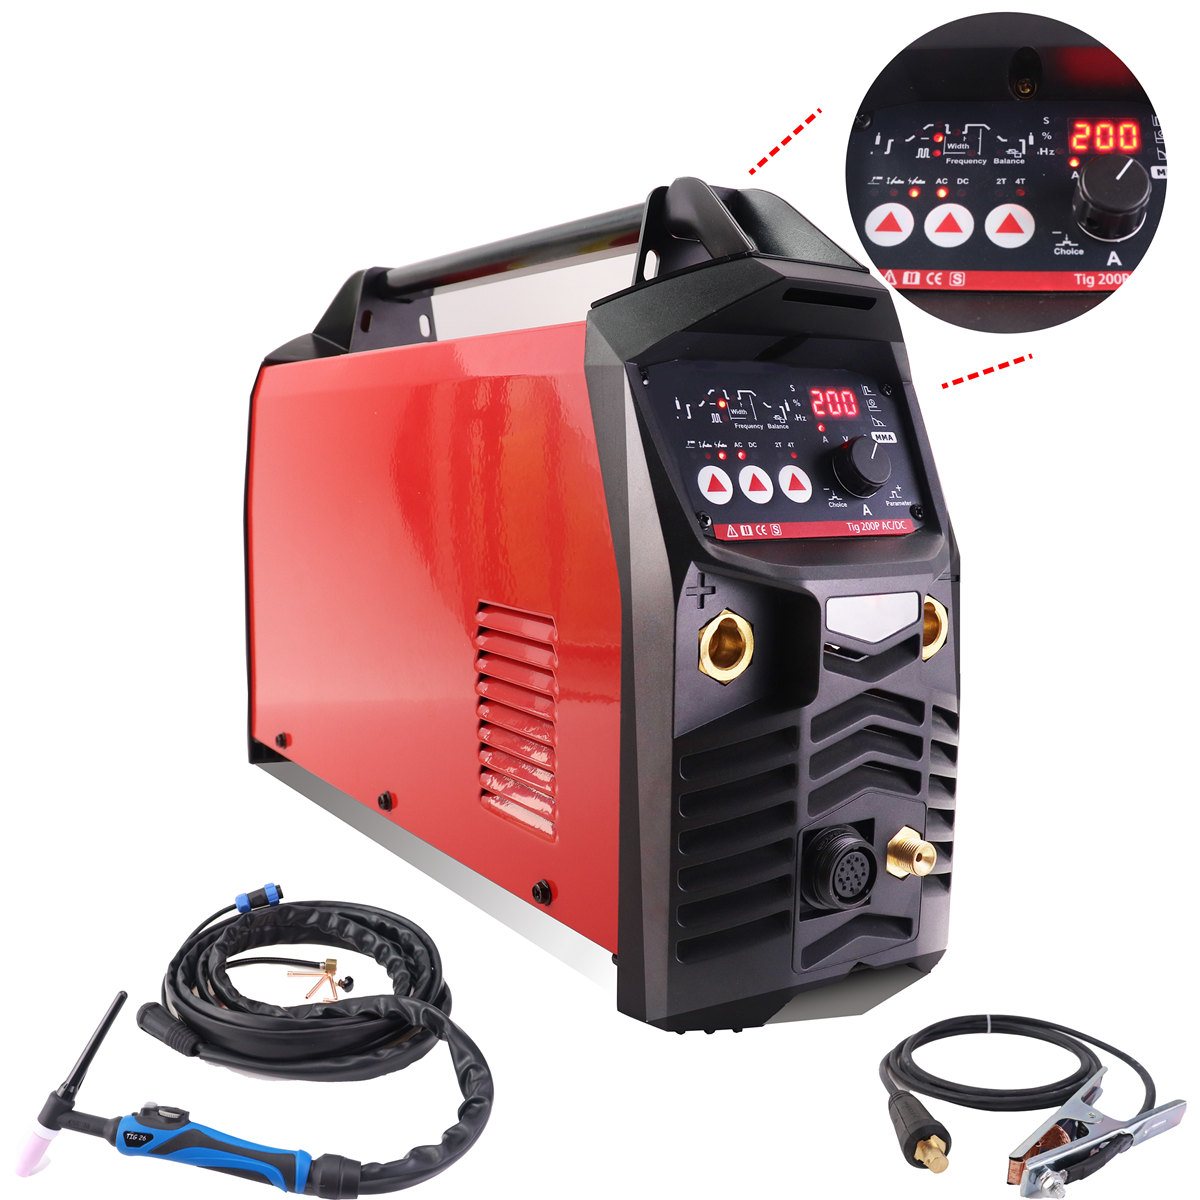 Aluminium Welder ACDC TIG Welding Machine 200A Digital Pulse TIG/MMA CE Approved Professional AC/DC Pulse TIG Welding Machine image